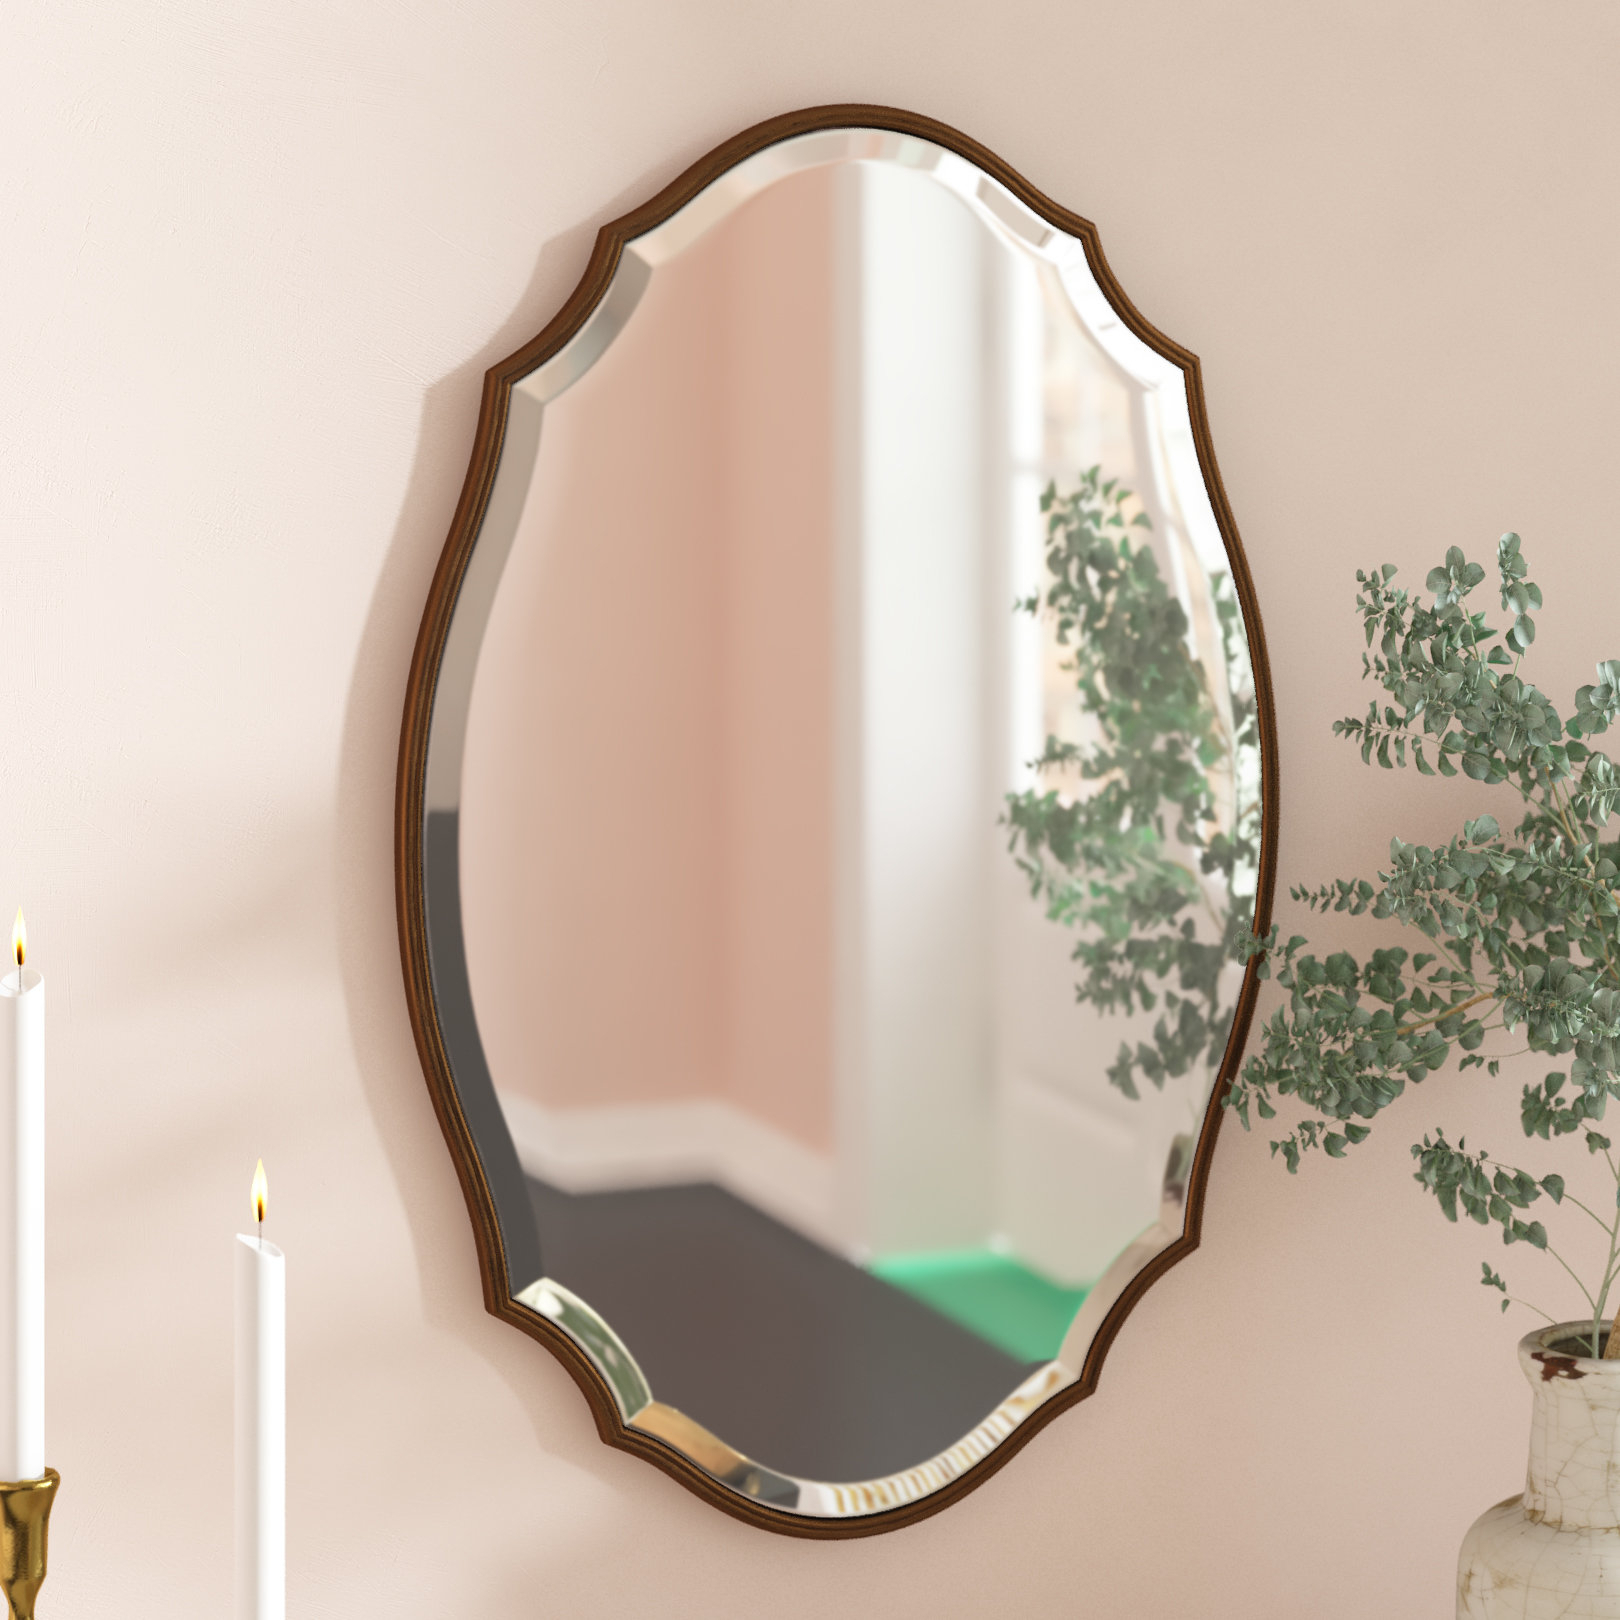 Rosdorf Park Modern & Contemporary Beveled Accent Mirror Pertaining To Guidinha Modern & Contemporary Accent Mirrors (View 11 of 30)